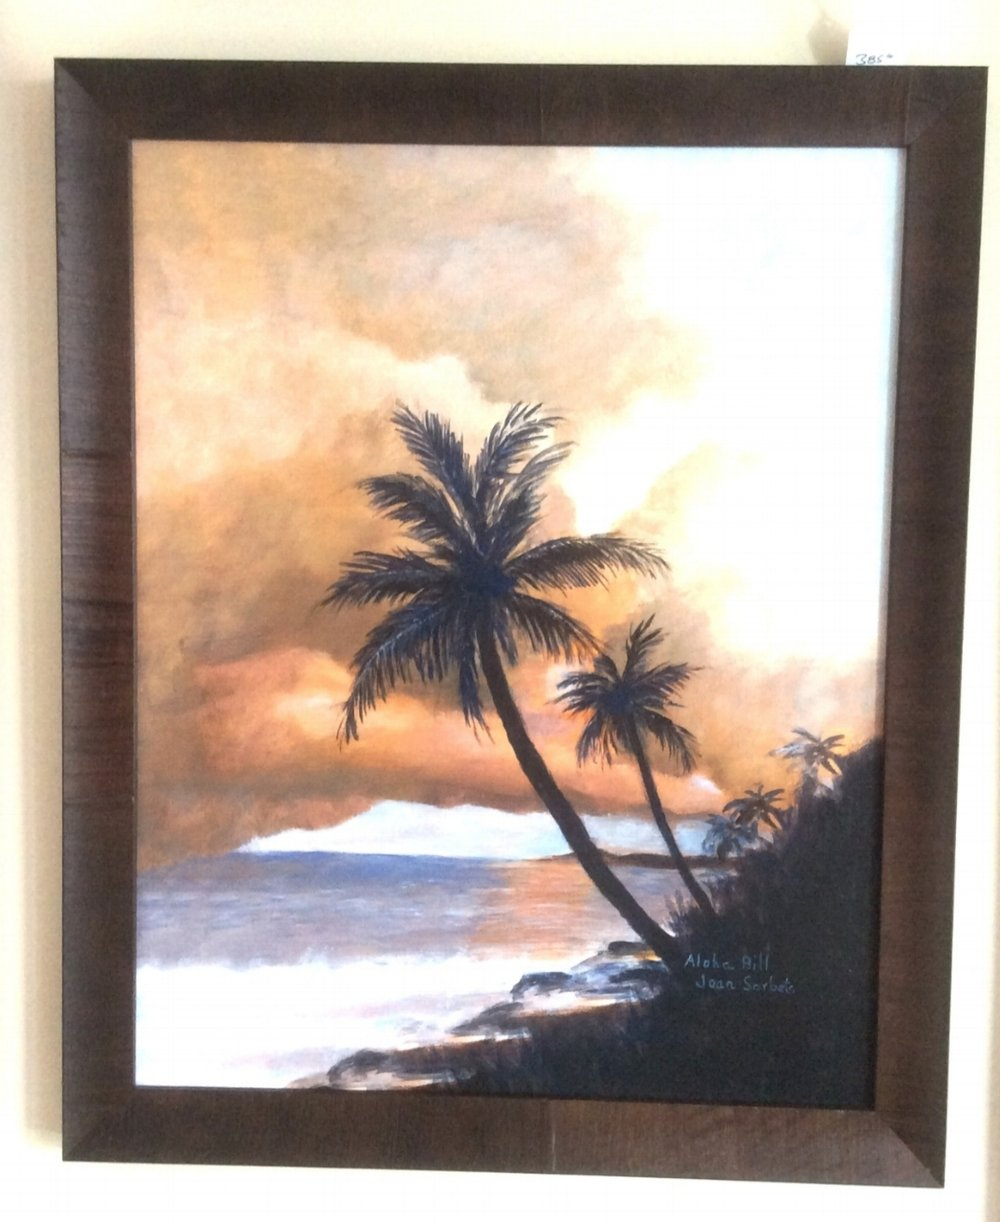 CUSTOM FRAMING - Local Art